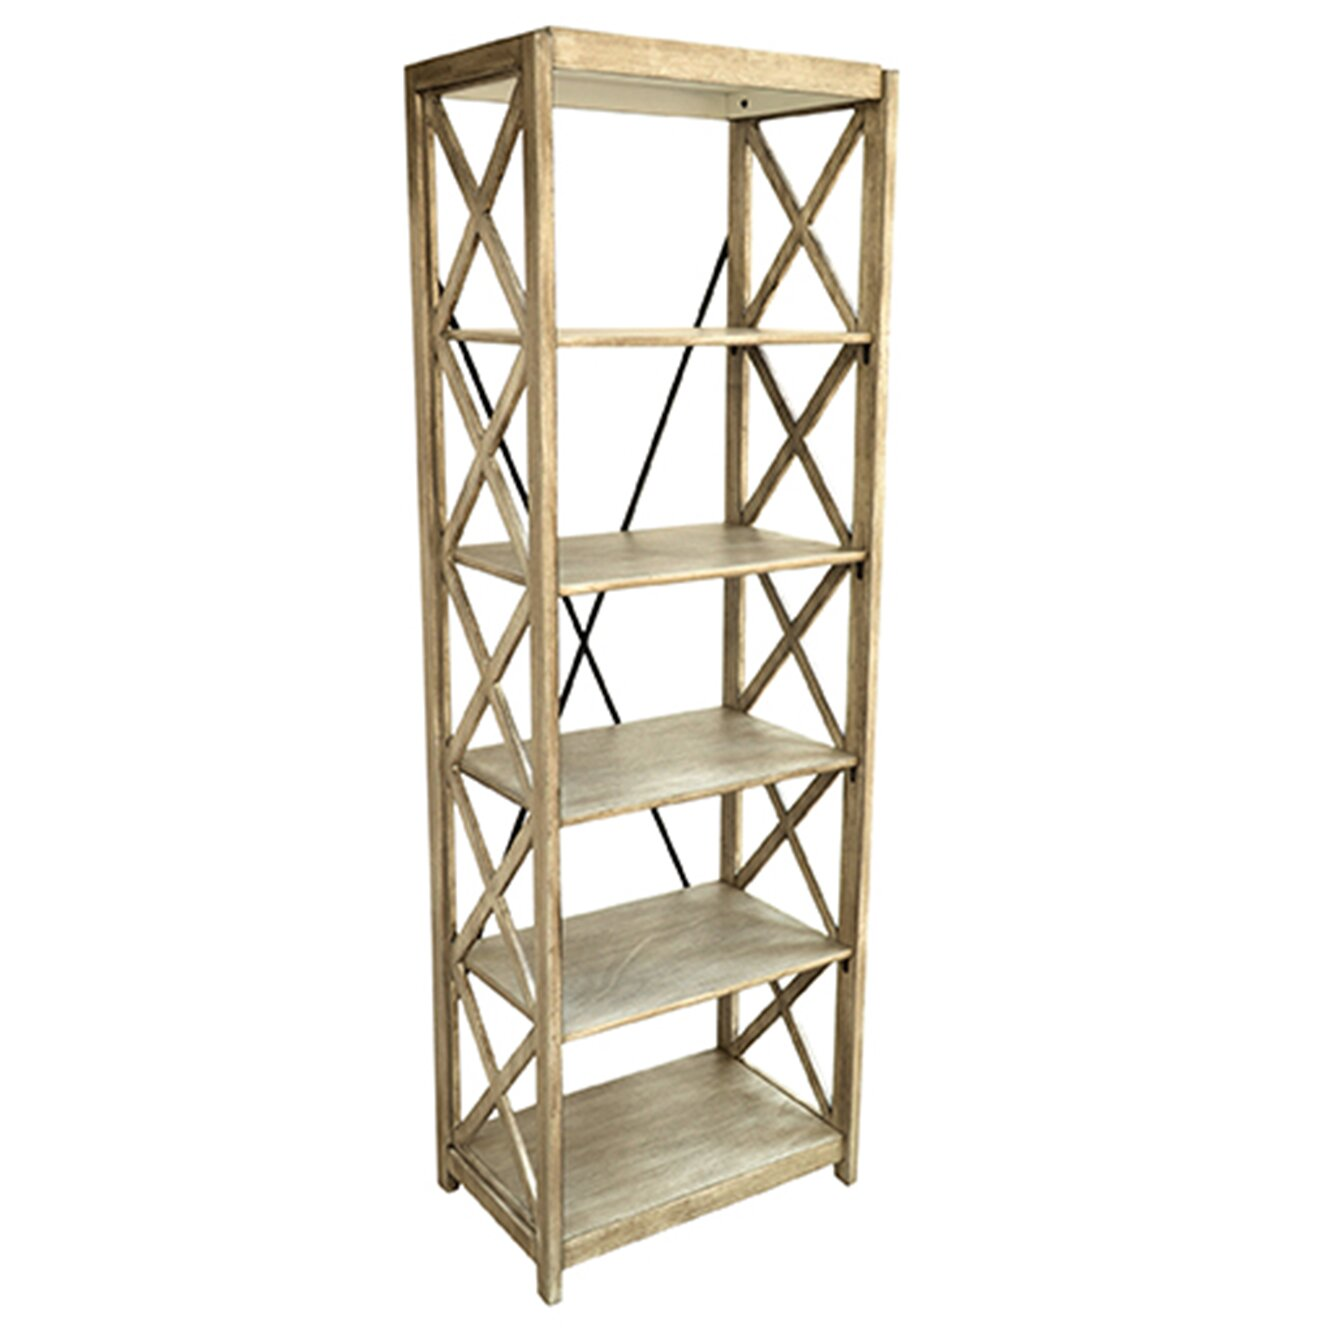 crestview brookline tall 72 etagere bookcase reviews. Black Bedroom Furniture Sets. Home Design Ideas